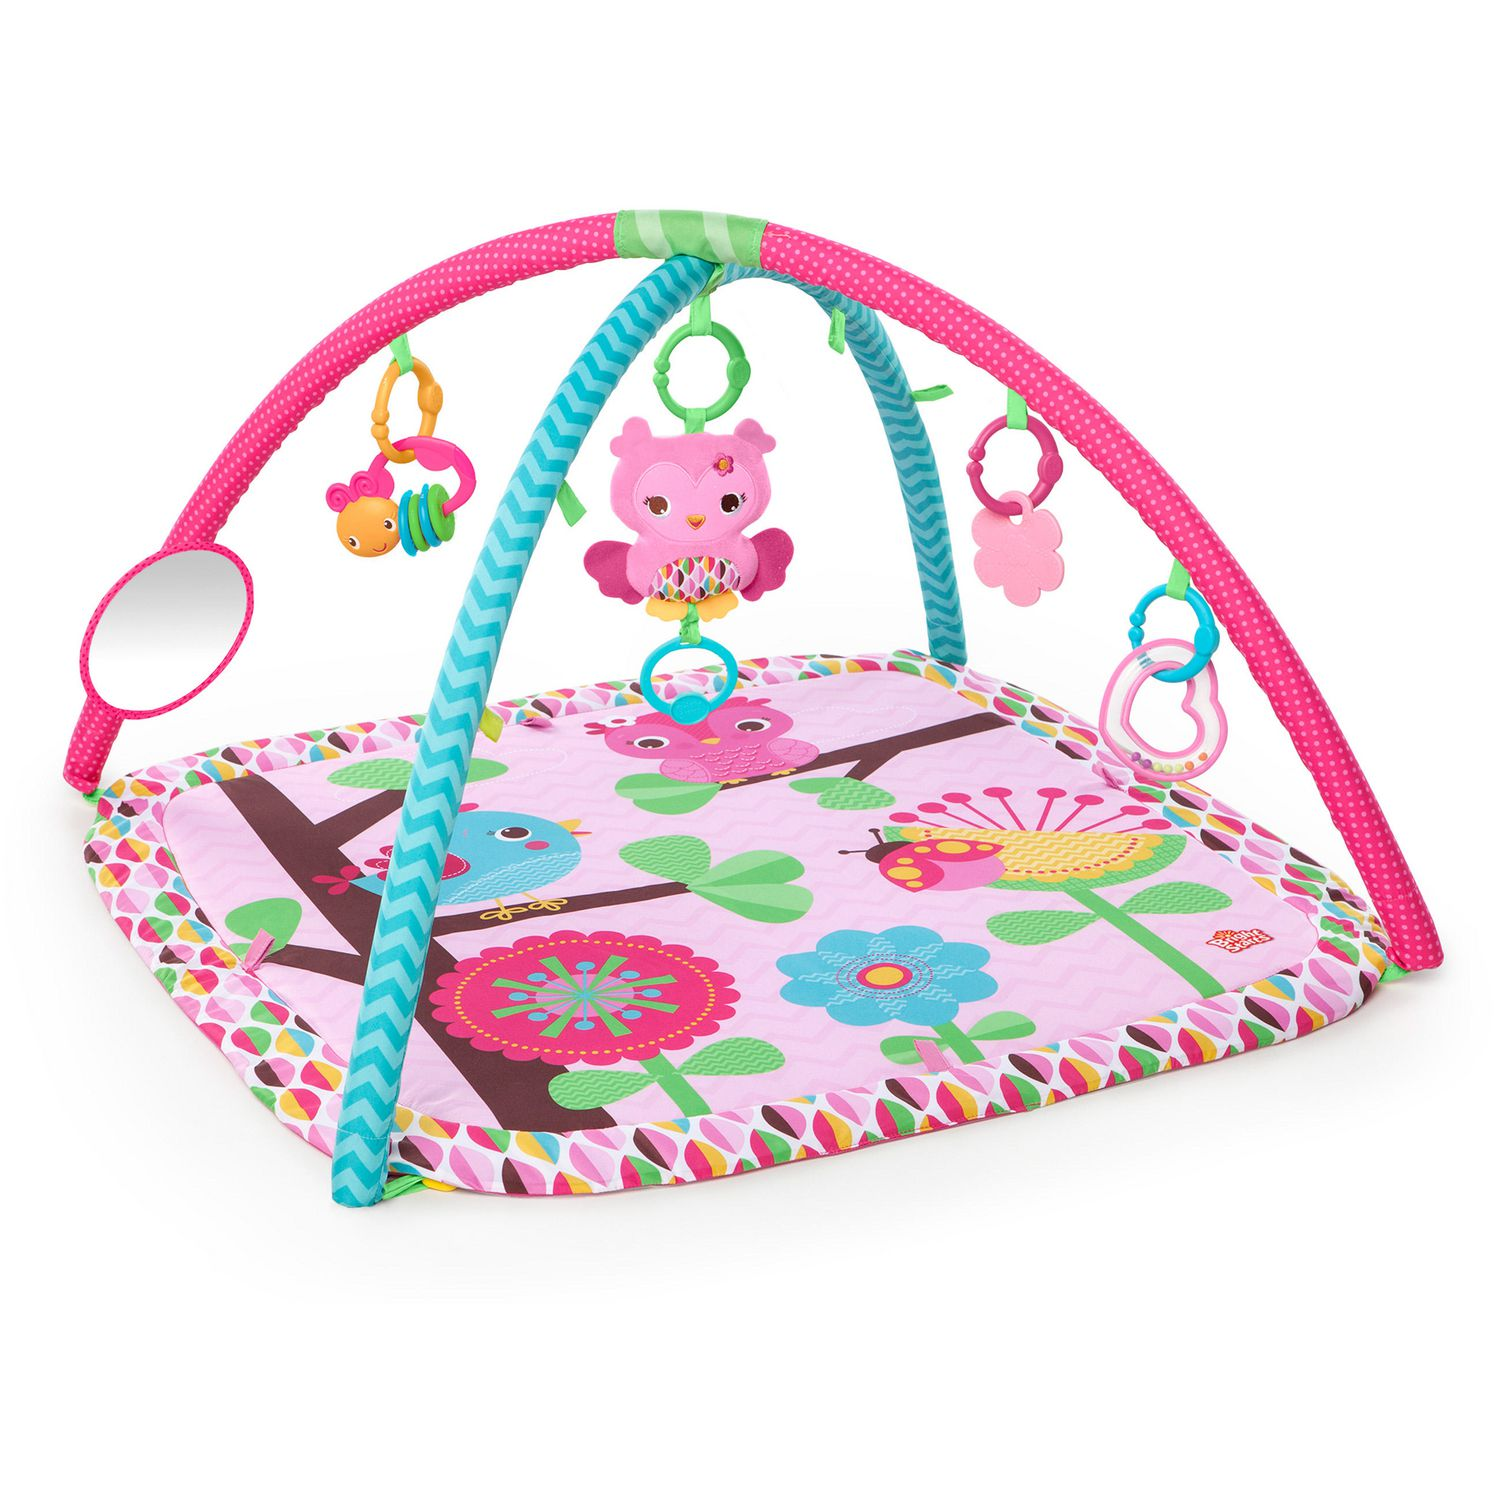 buy gyms  play mats online  walmart canada - bright starts™ charming chirps activity gym™